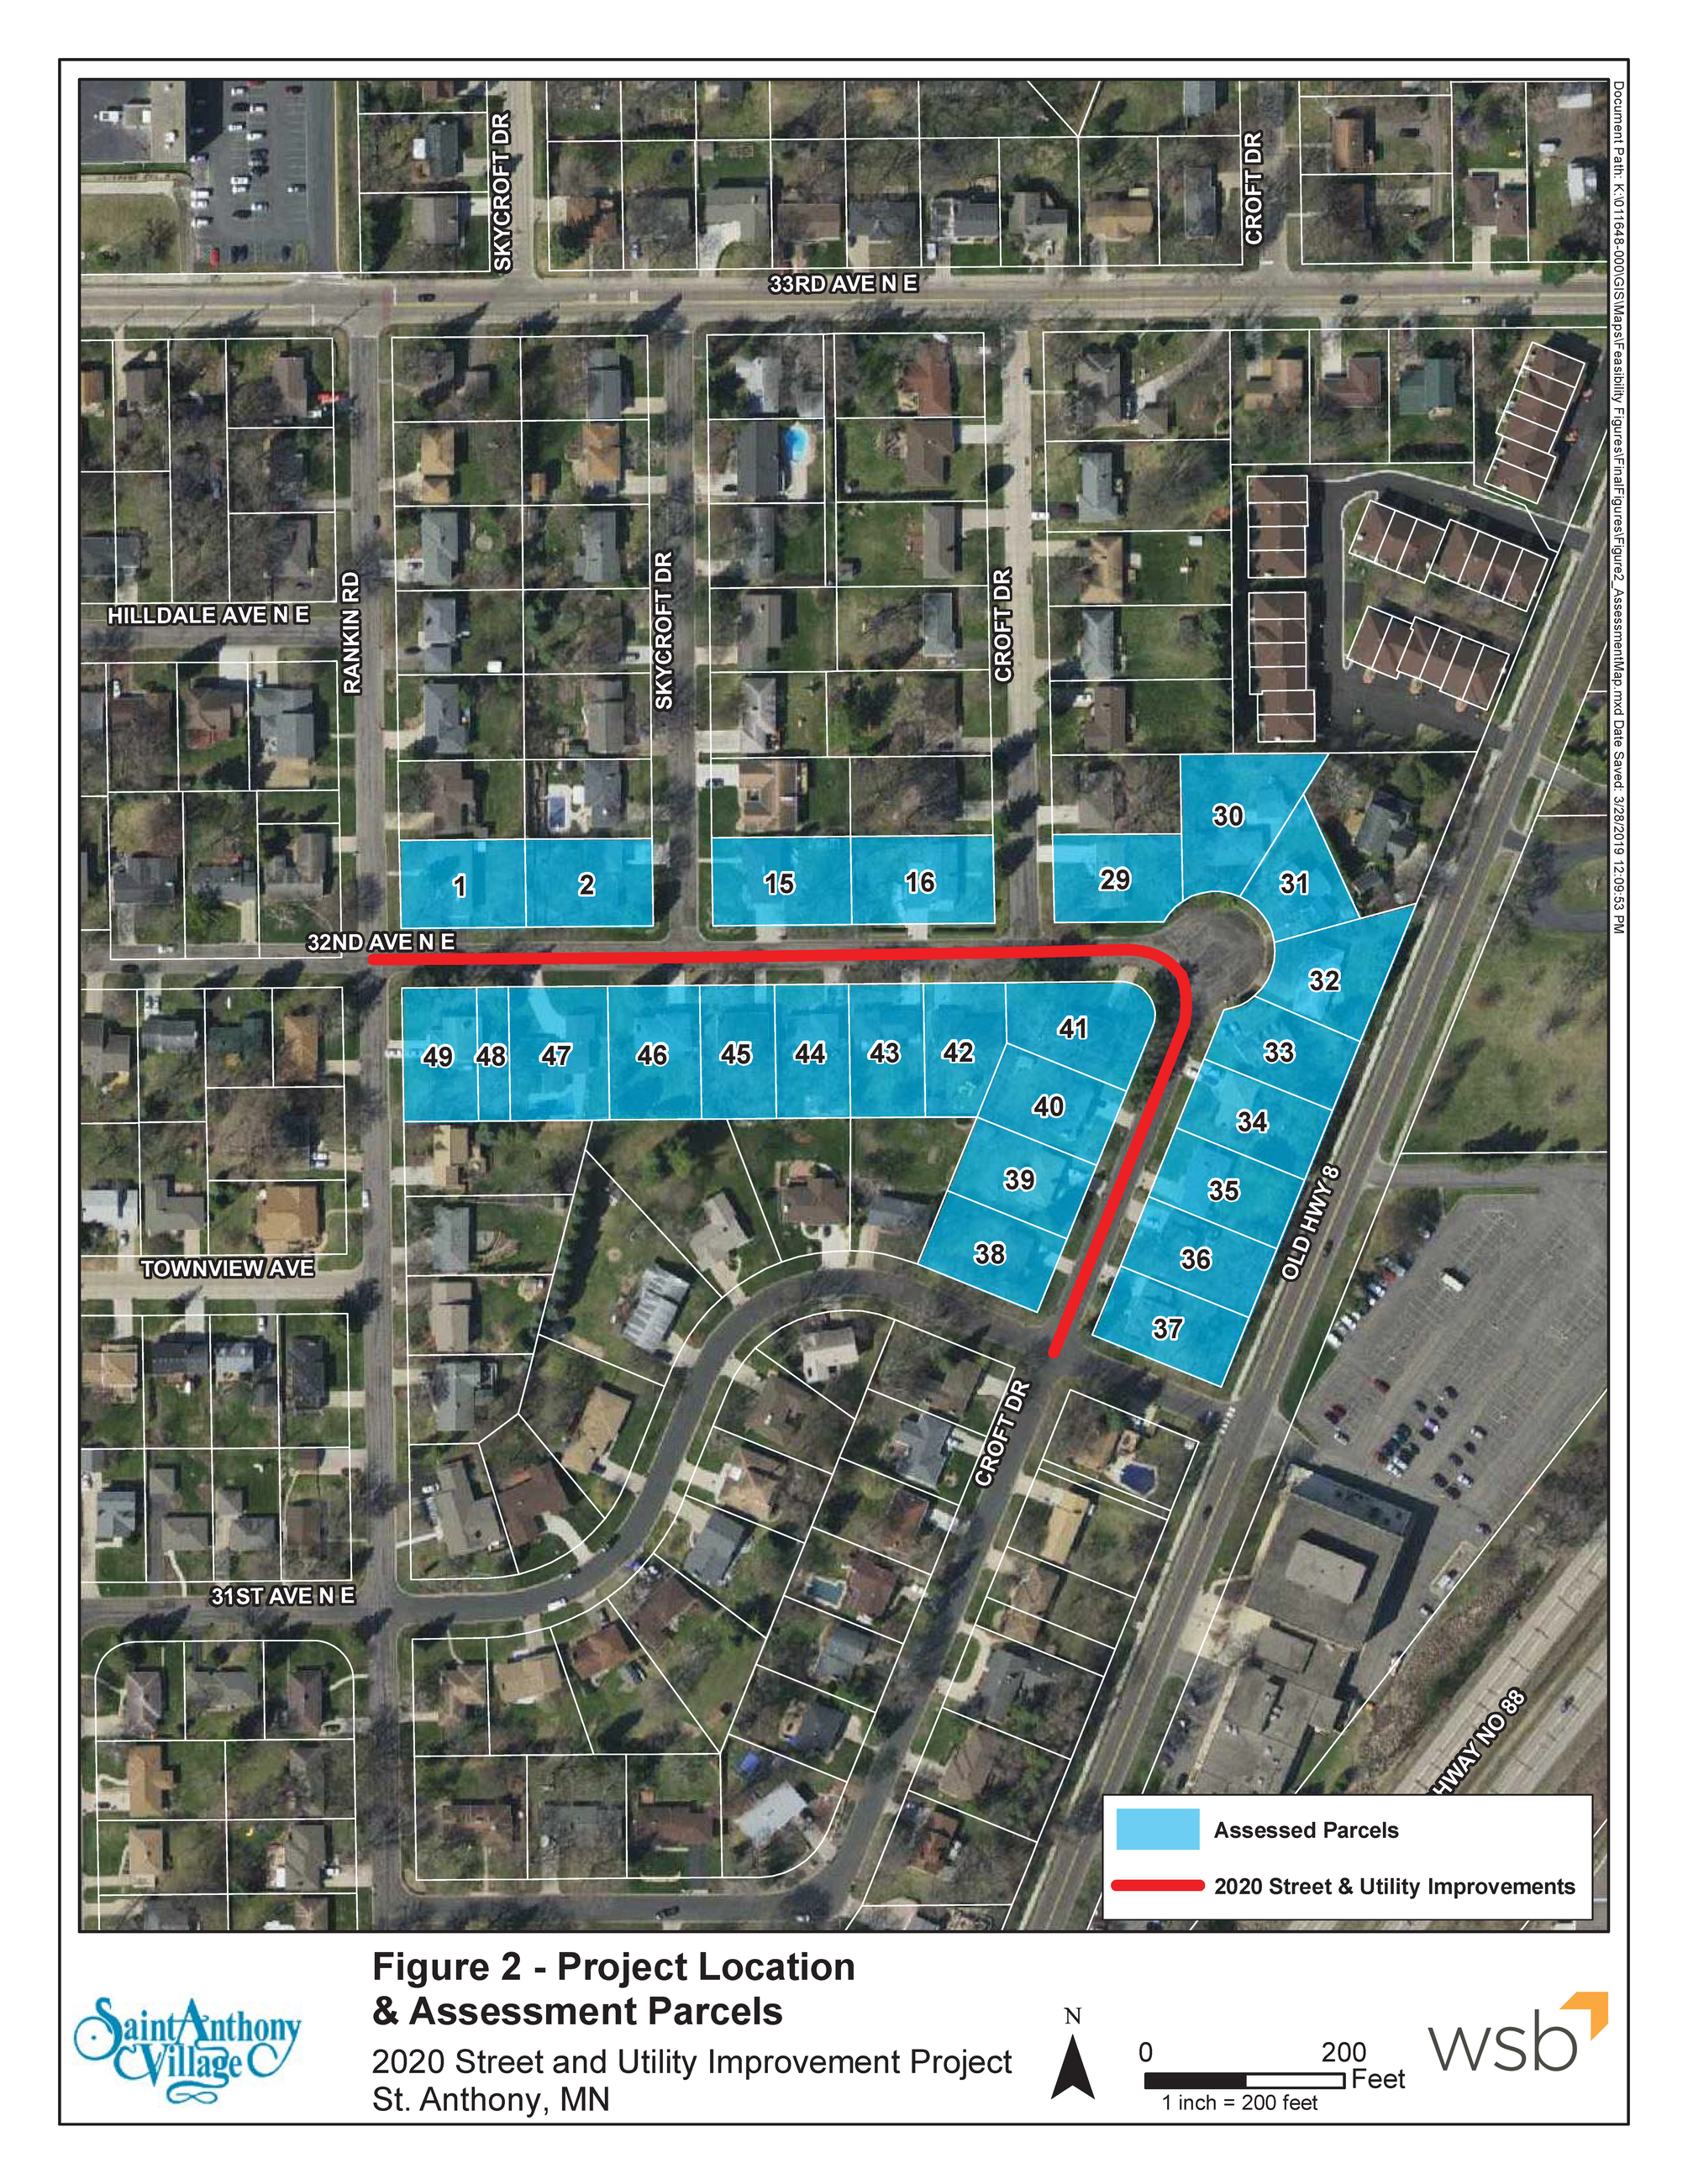 2020 Projects Assessment Parcels Map 32nd Avenue